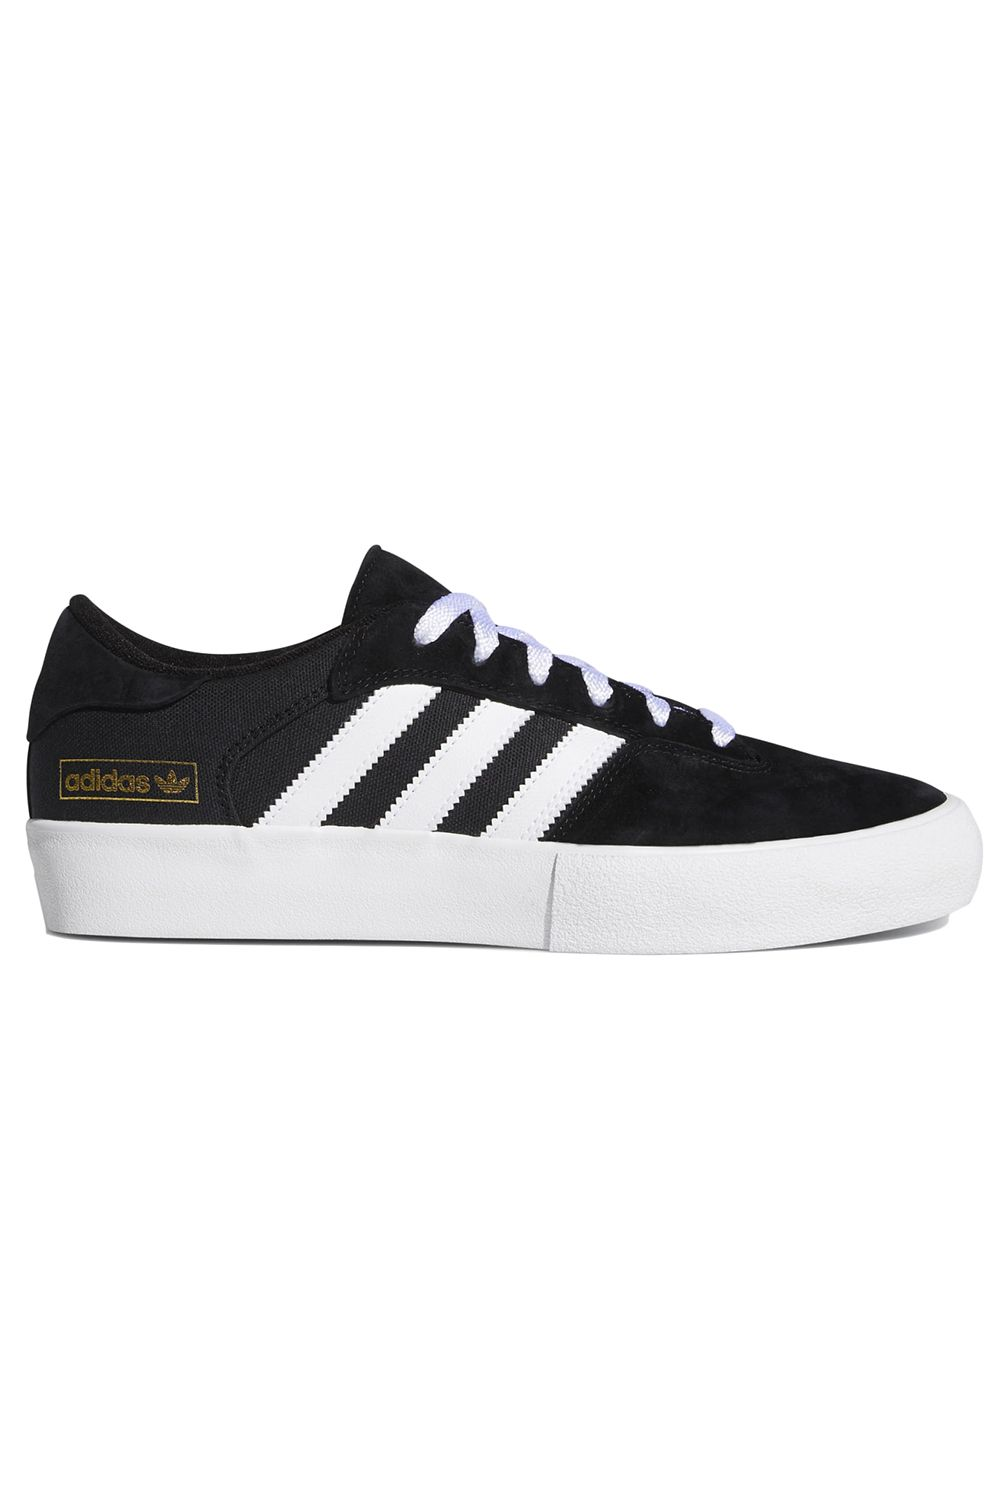 Tenis Adidas MATCHBREAK SUPER Core Black/Ftwr White/Gold Met.